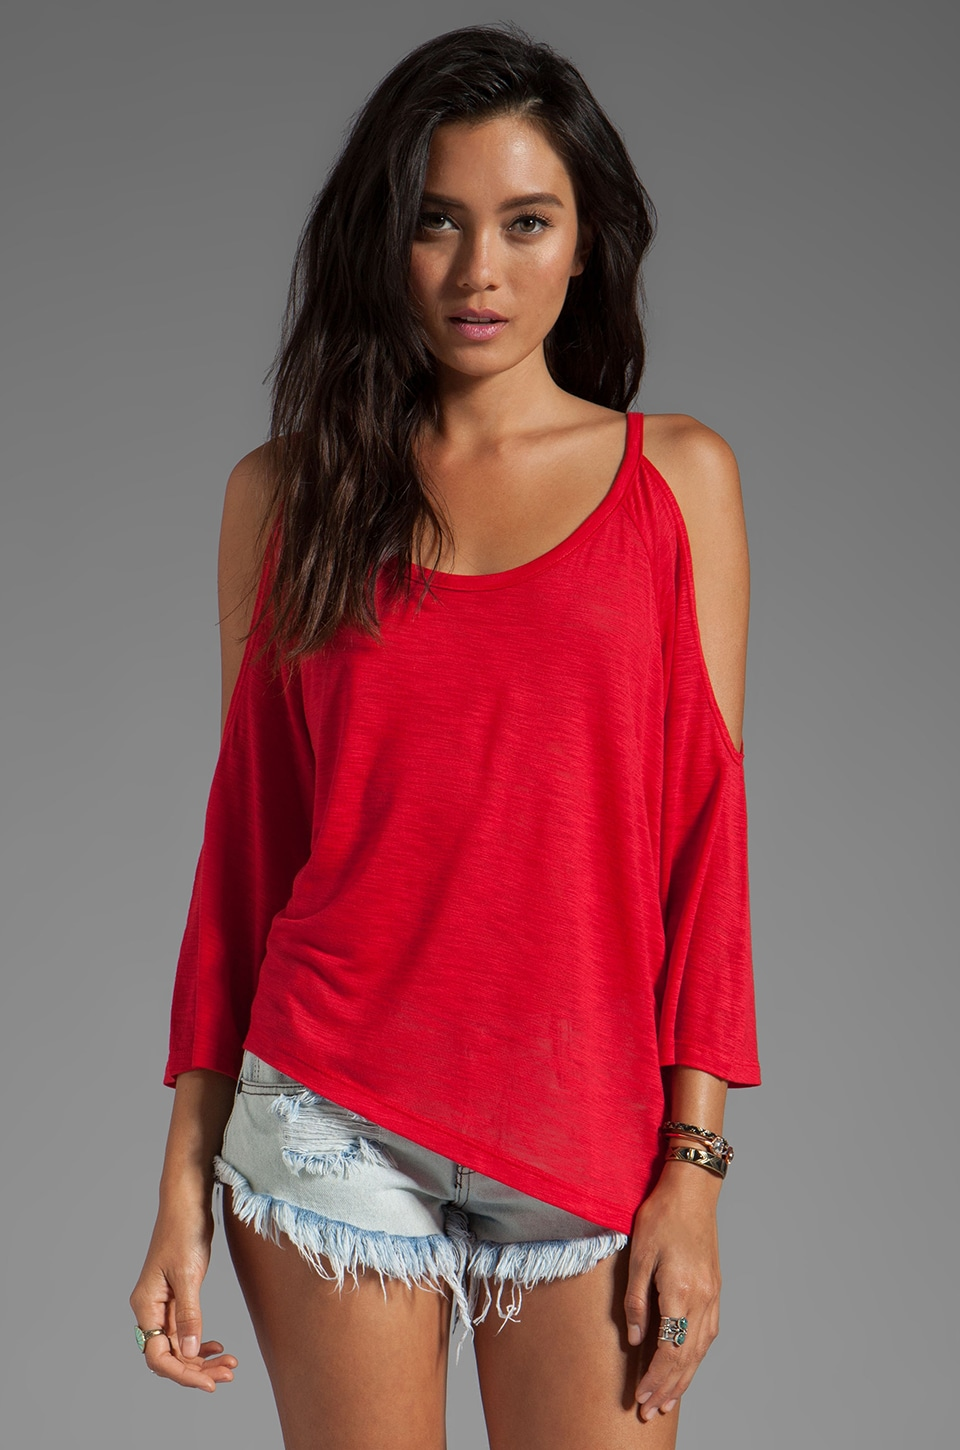 Blue Life Trendsetter Tee in Red